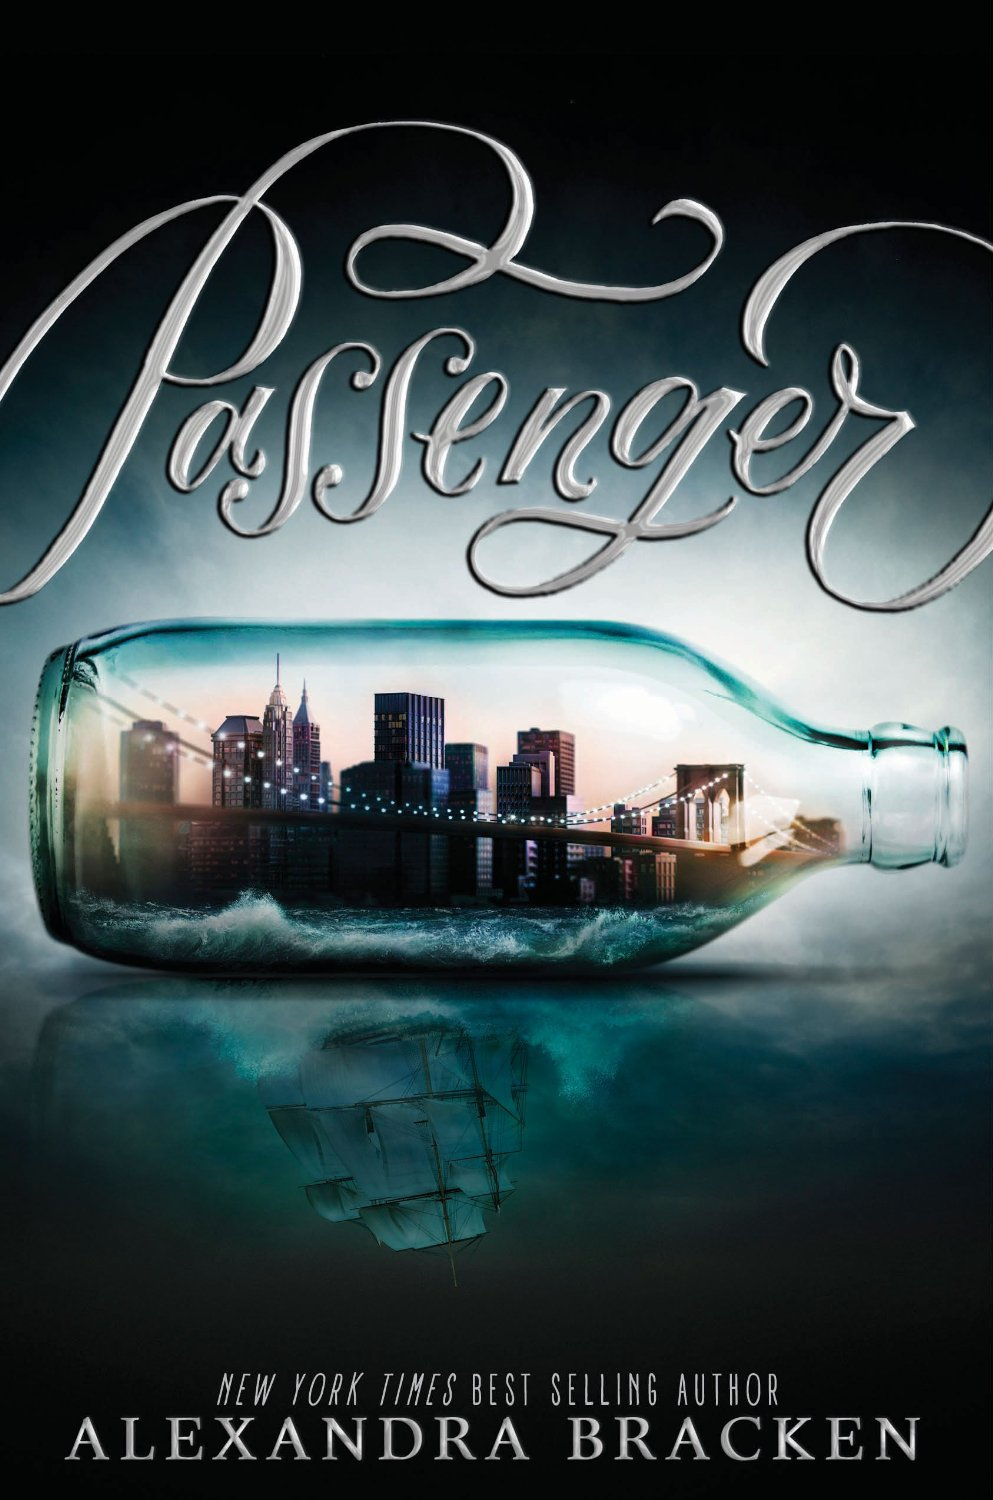 Passenger by Alexandra Bracken on Clear Eyes, Full Shelves